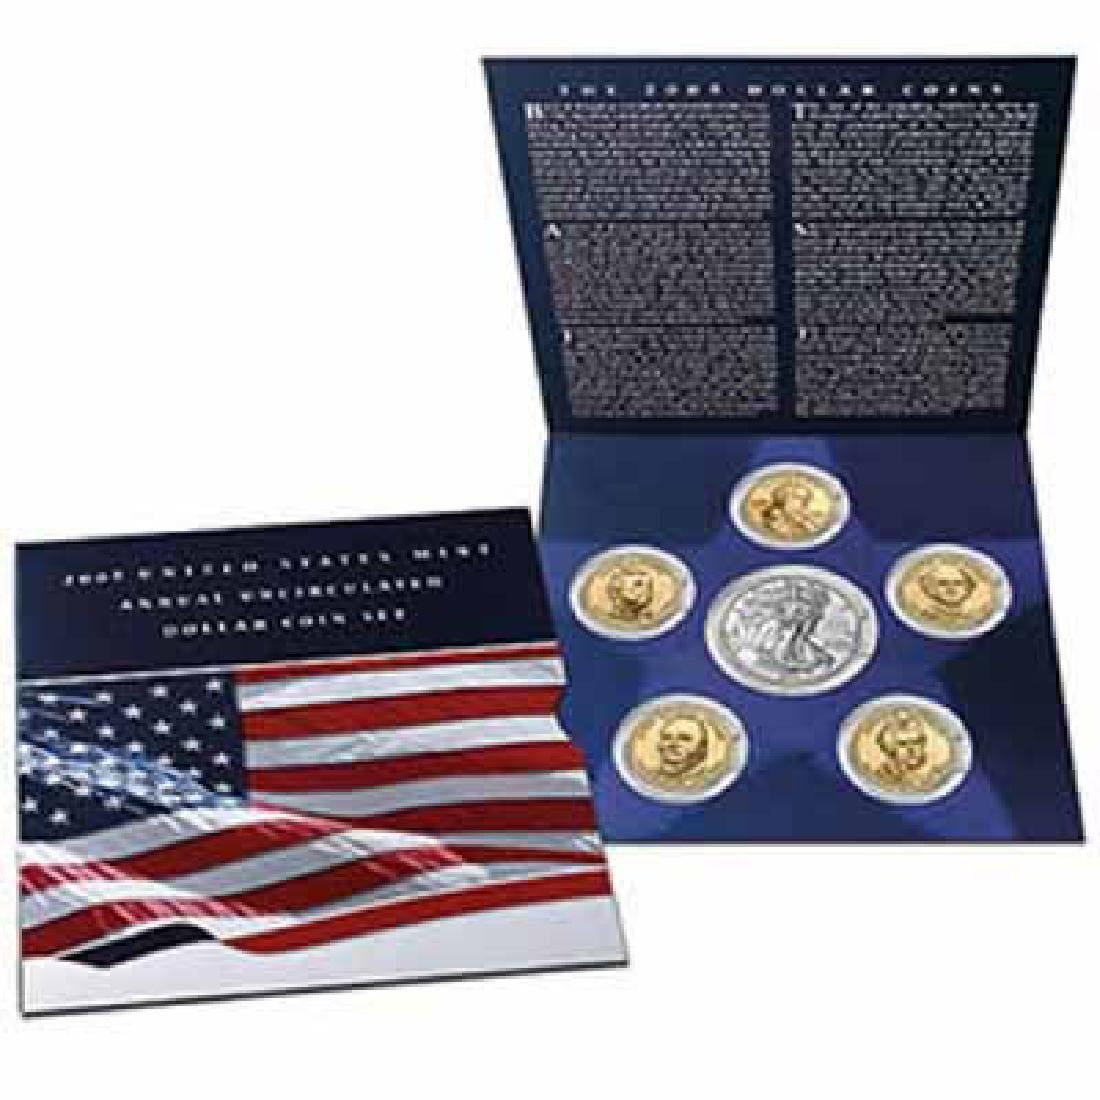 2007 U.S. Mint Annual Uncirculated Dollar Coin Set